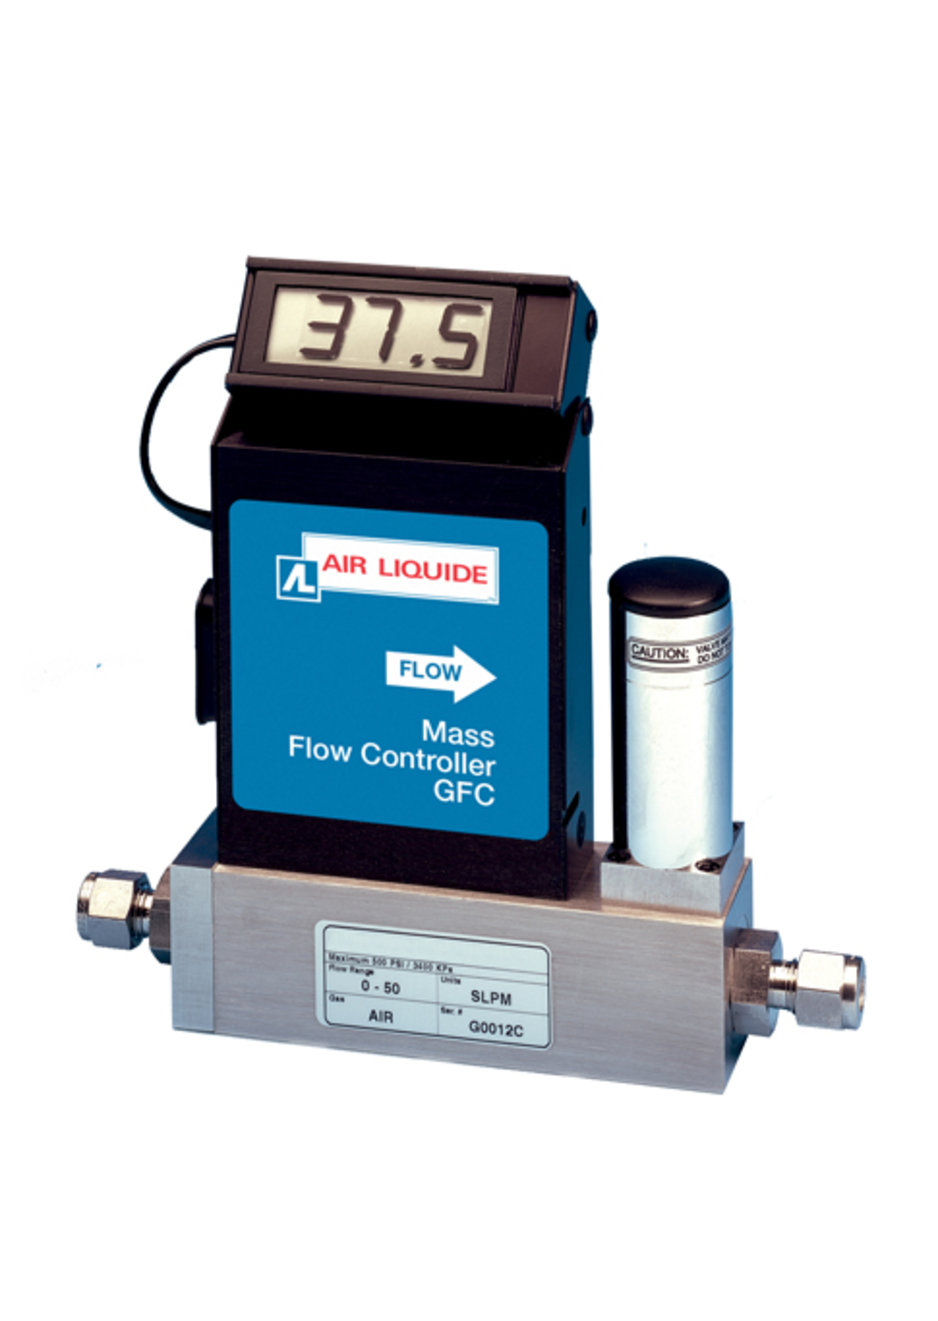 Model GFC Thermal Mass Flow Controllers are compact, self-contained flow controllers designed to indicate and control flow rates of gases.